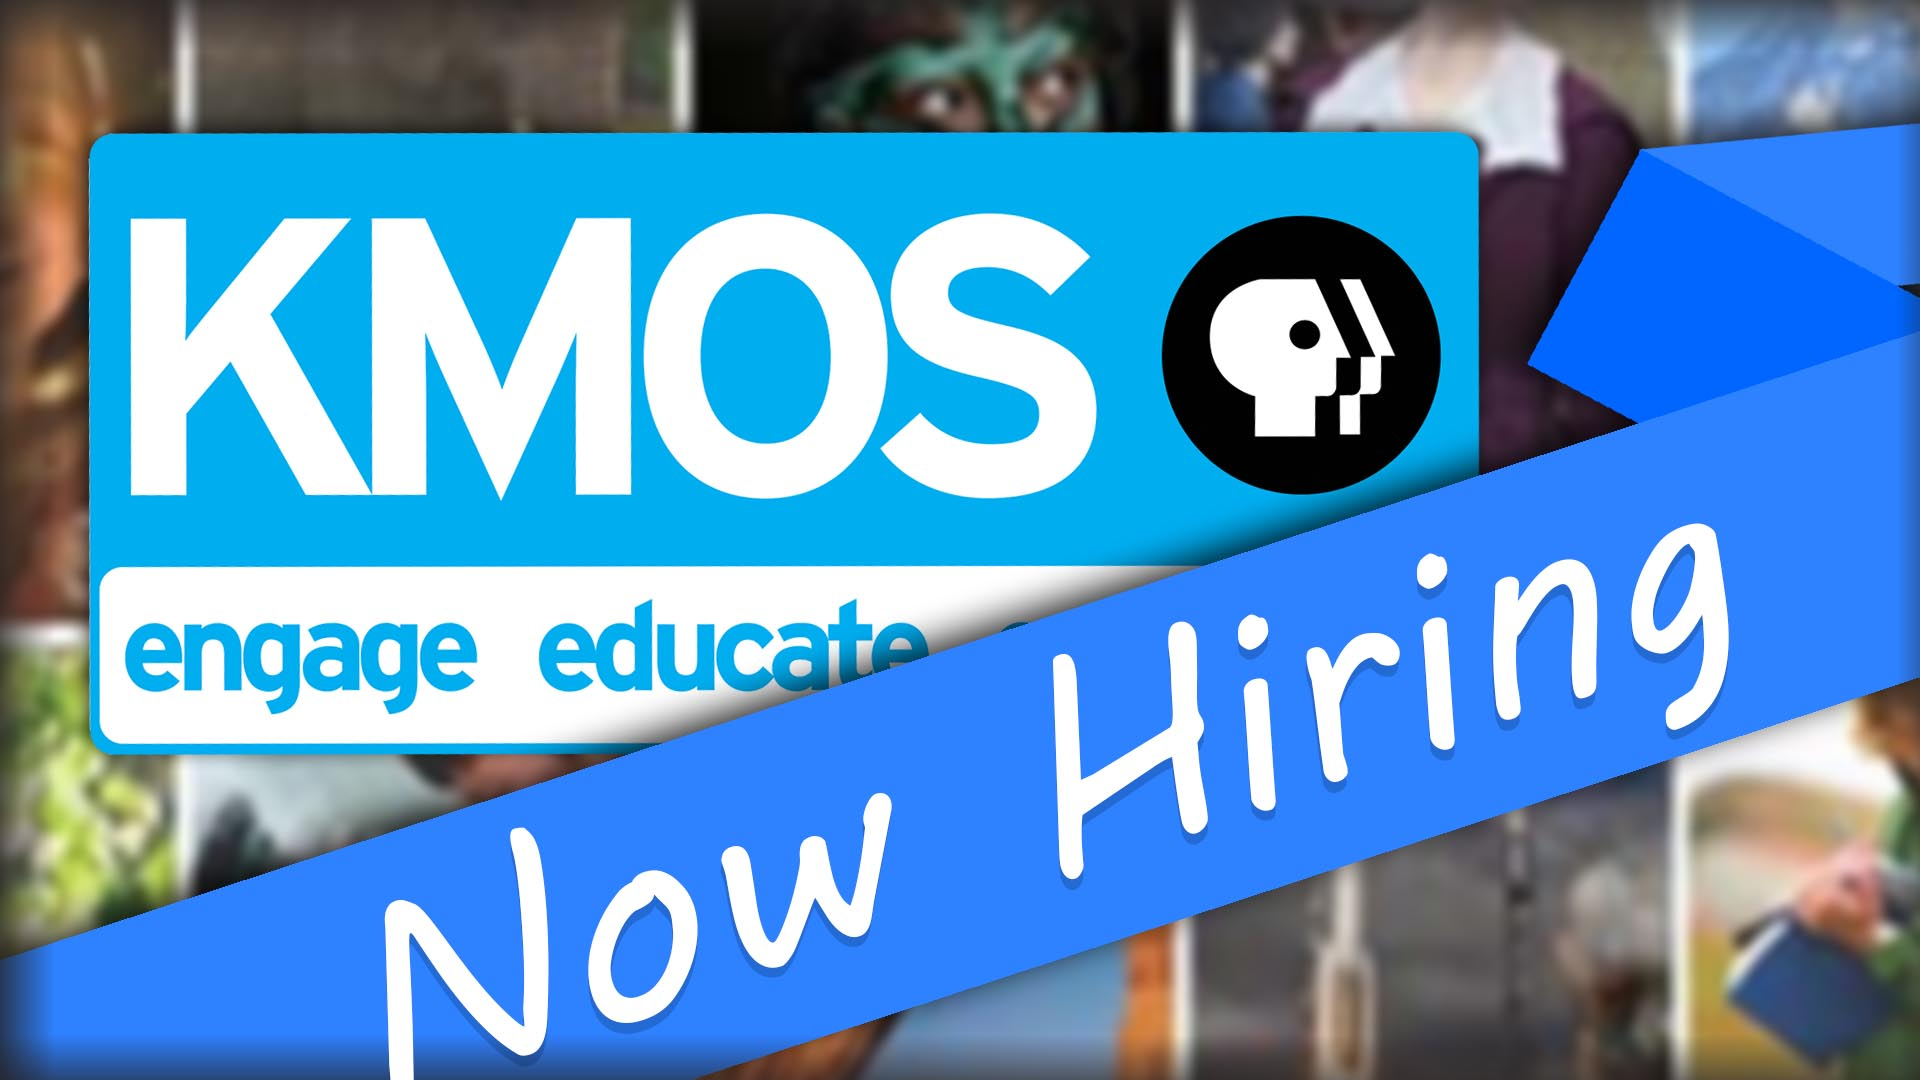 KMOS Seeks Corporate Sales Officer